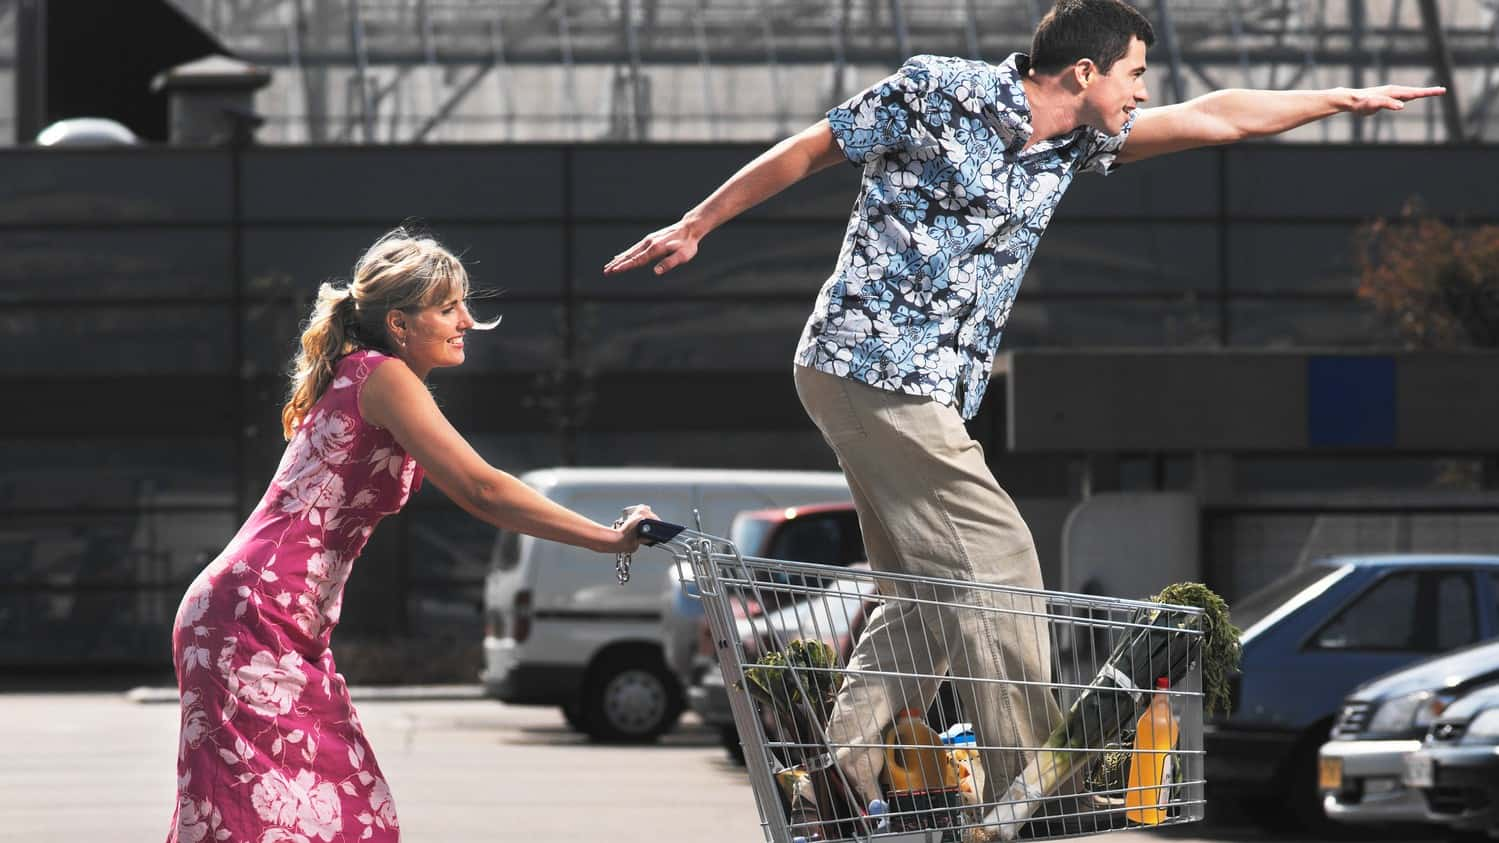 a woman pushes a man standing in a shopping trolley pointing ahead far off into the distance.